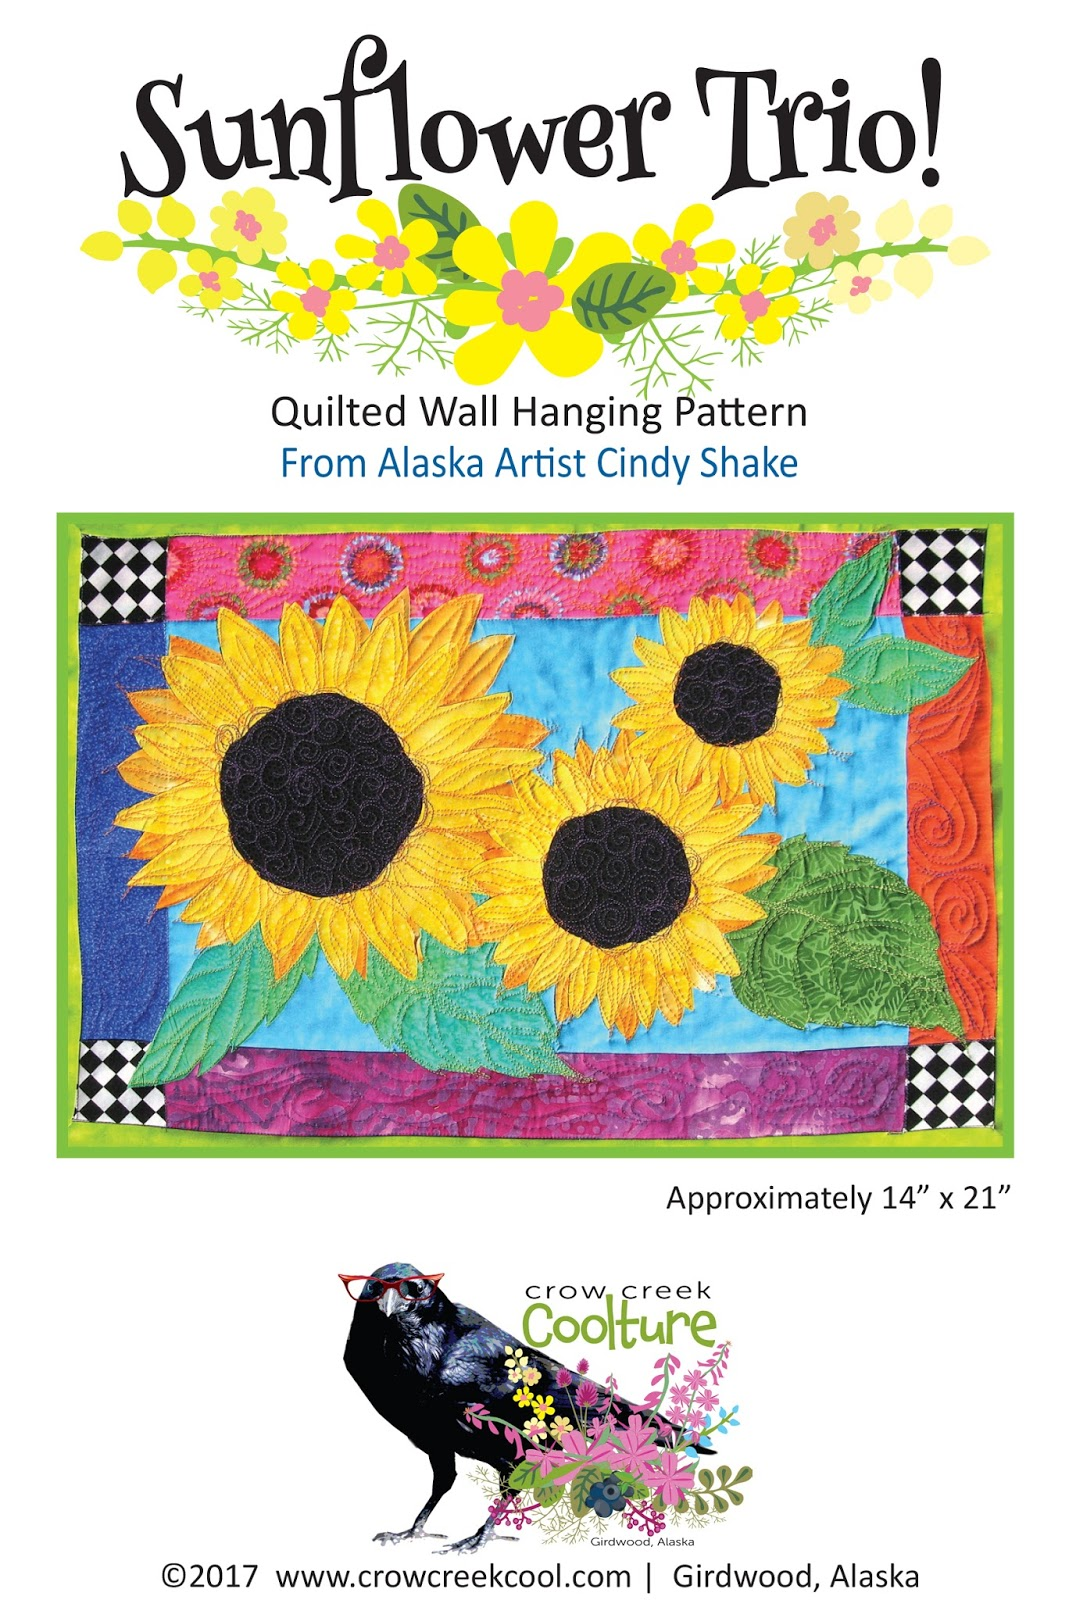 Cindy Shake Design: Fabric Design & Art Quilt Patterns